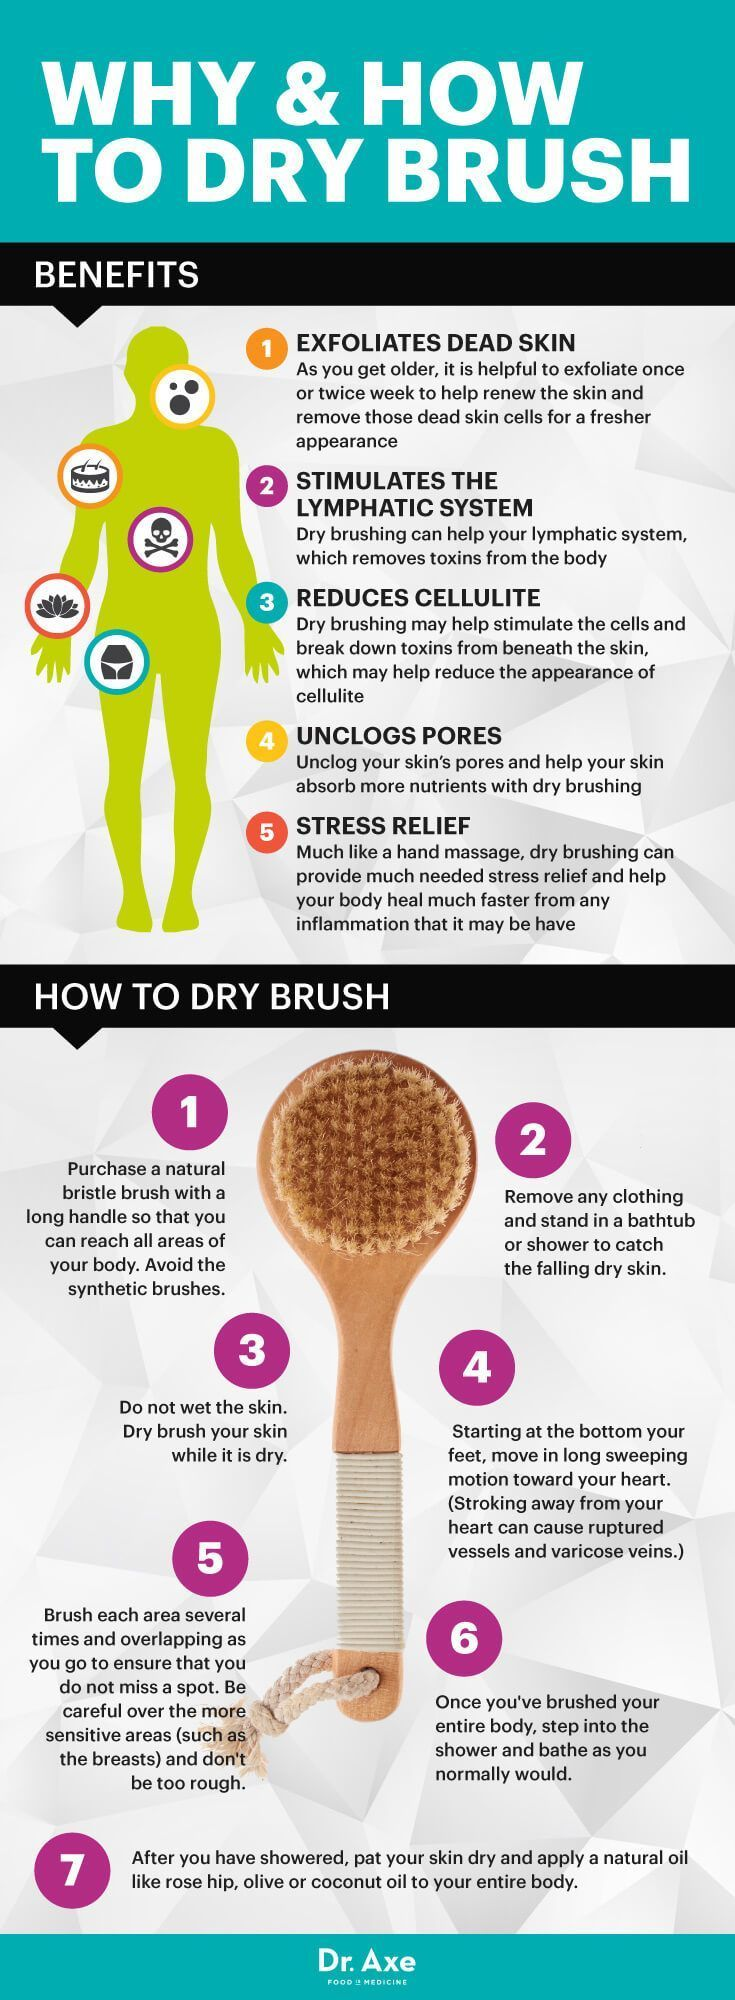 Dry brushing benefits - Dr. Axe http://www.draxe.com #health #holistic #natural Natural Hair Oils + Beauty Products For All Races, Hair & Skin Types - www.ashamiel.com